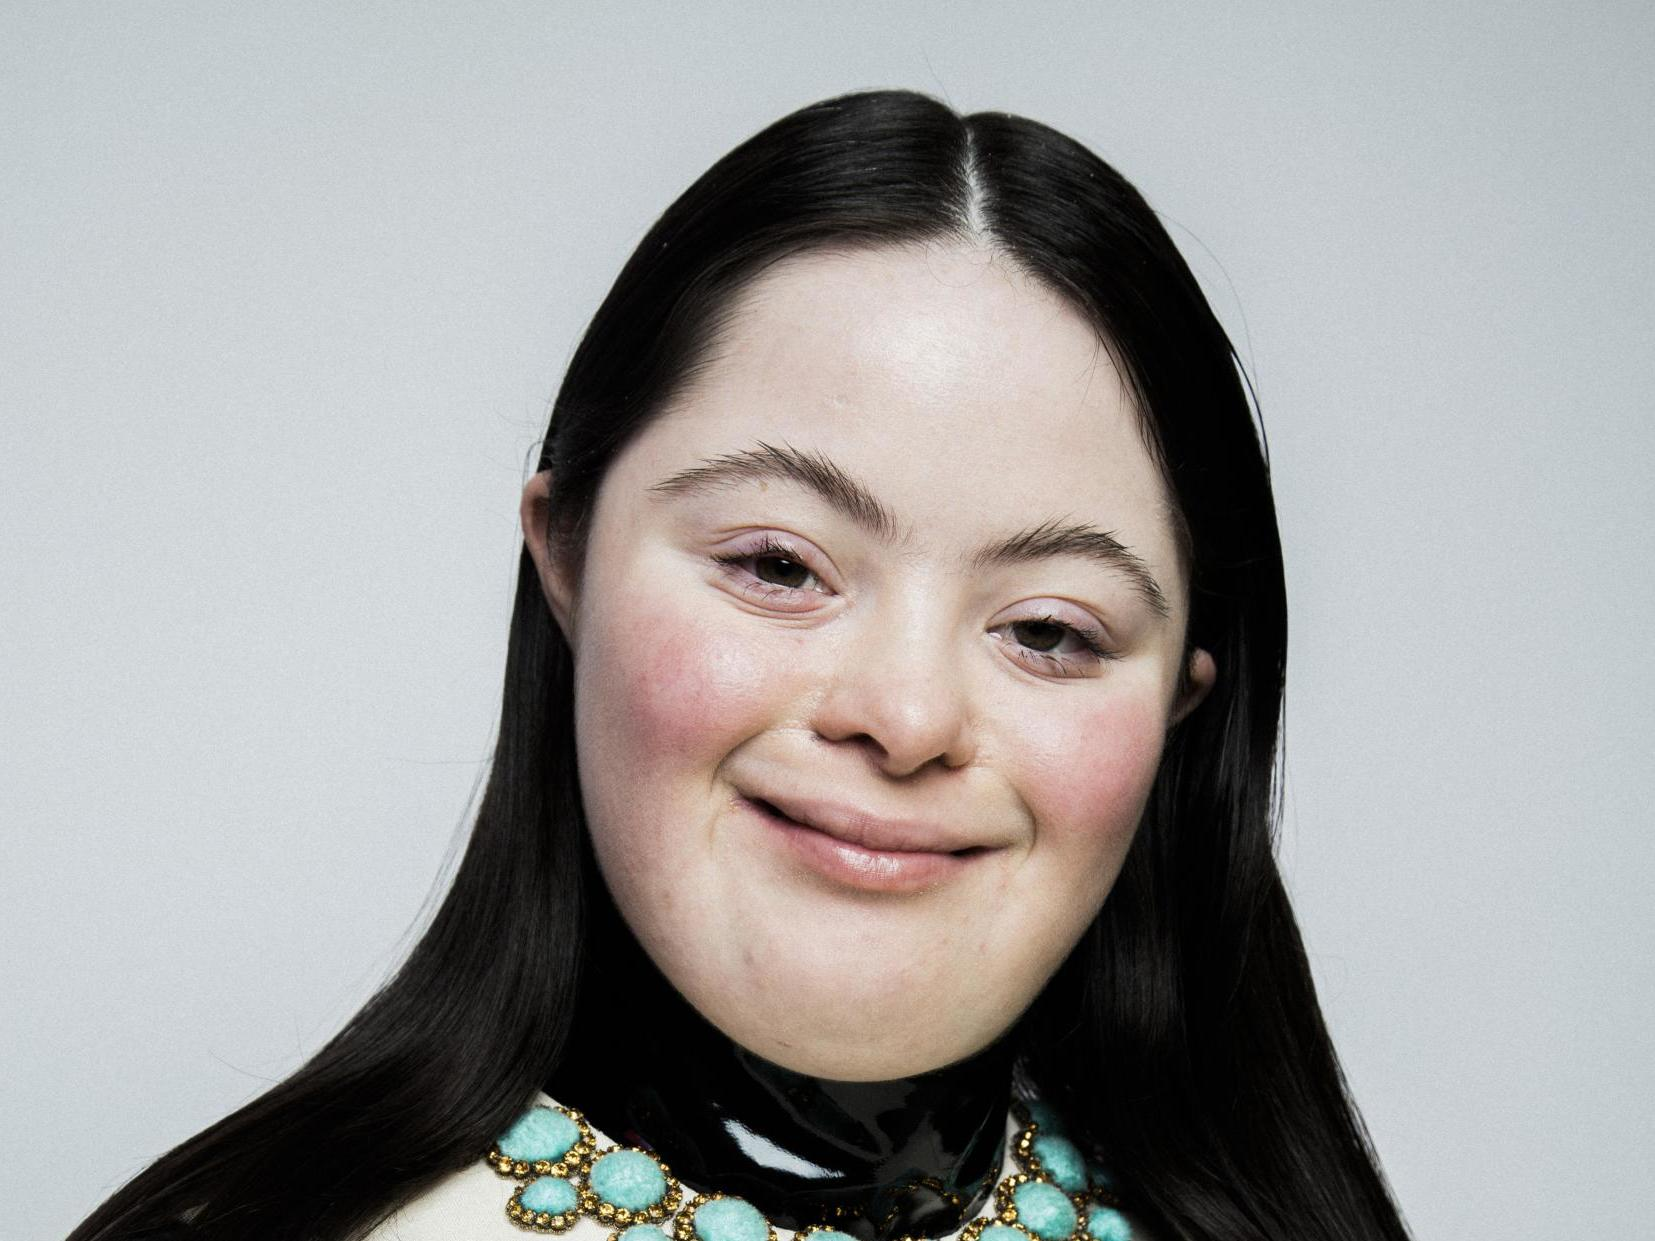 Model with Down's syndrome stars in Gucci Beauty campaign in Italian Vogue